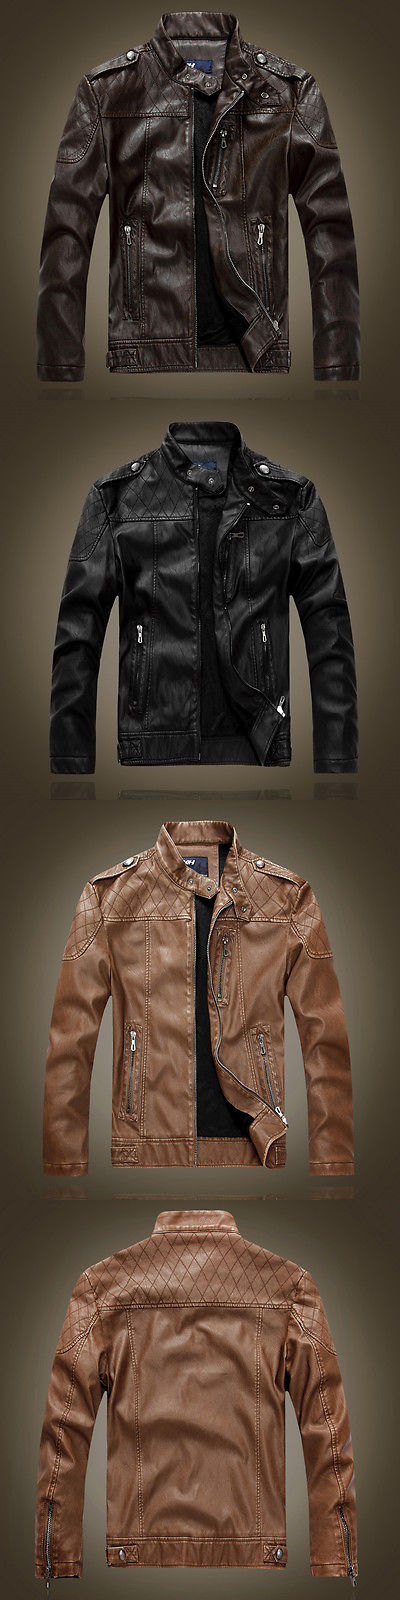 Men Coats And Jackets: Mens Genuine Lambskin Leather Jacket Black Slim Fit Biker Motorcycle Jacket BUY IT NOW ONLY: $36.5